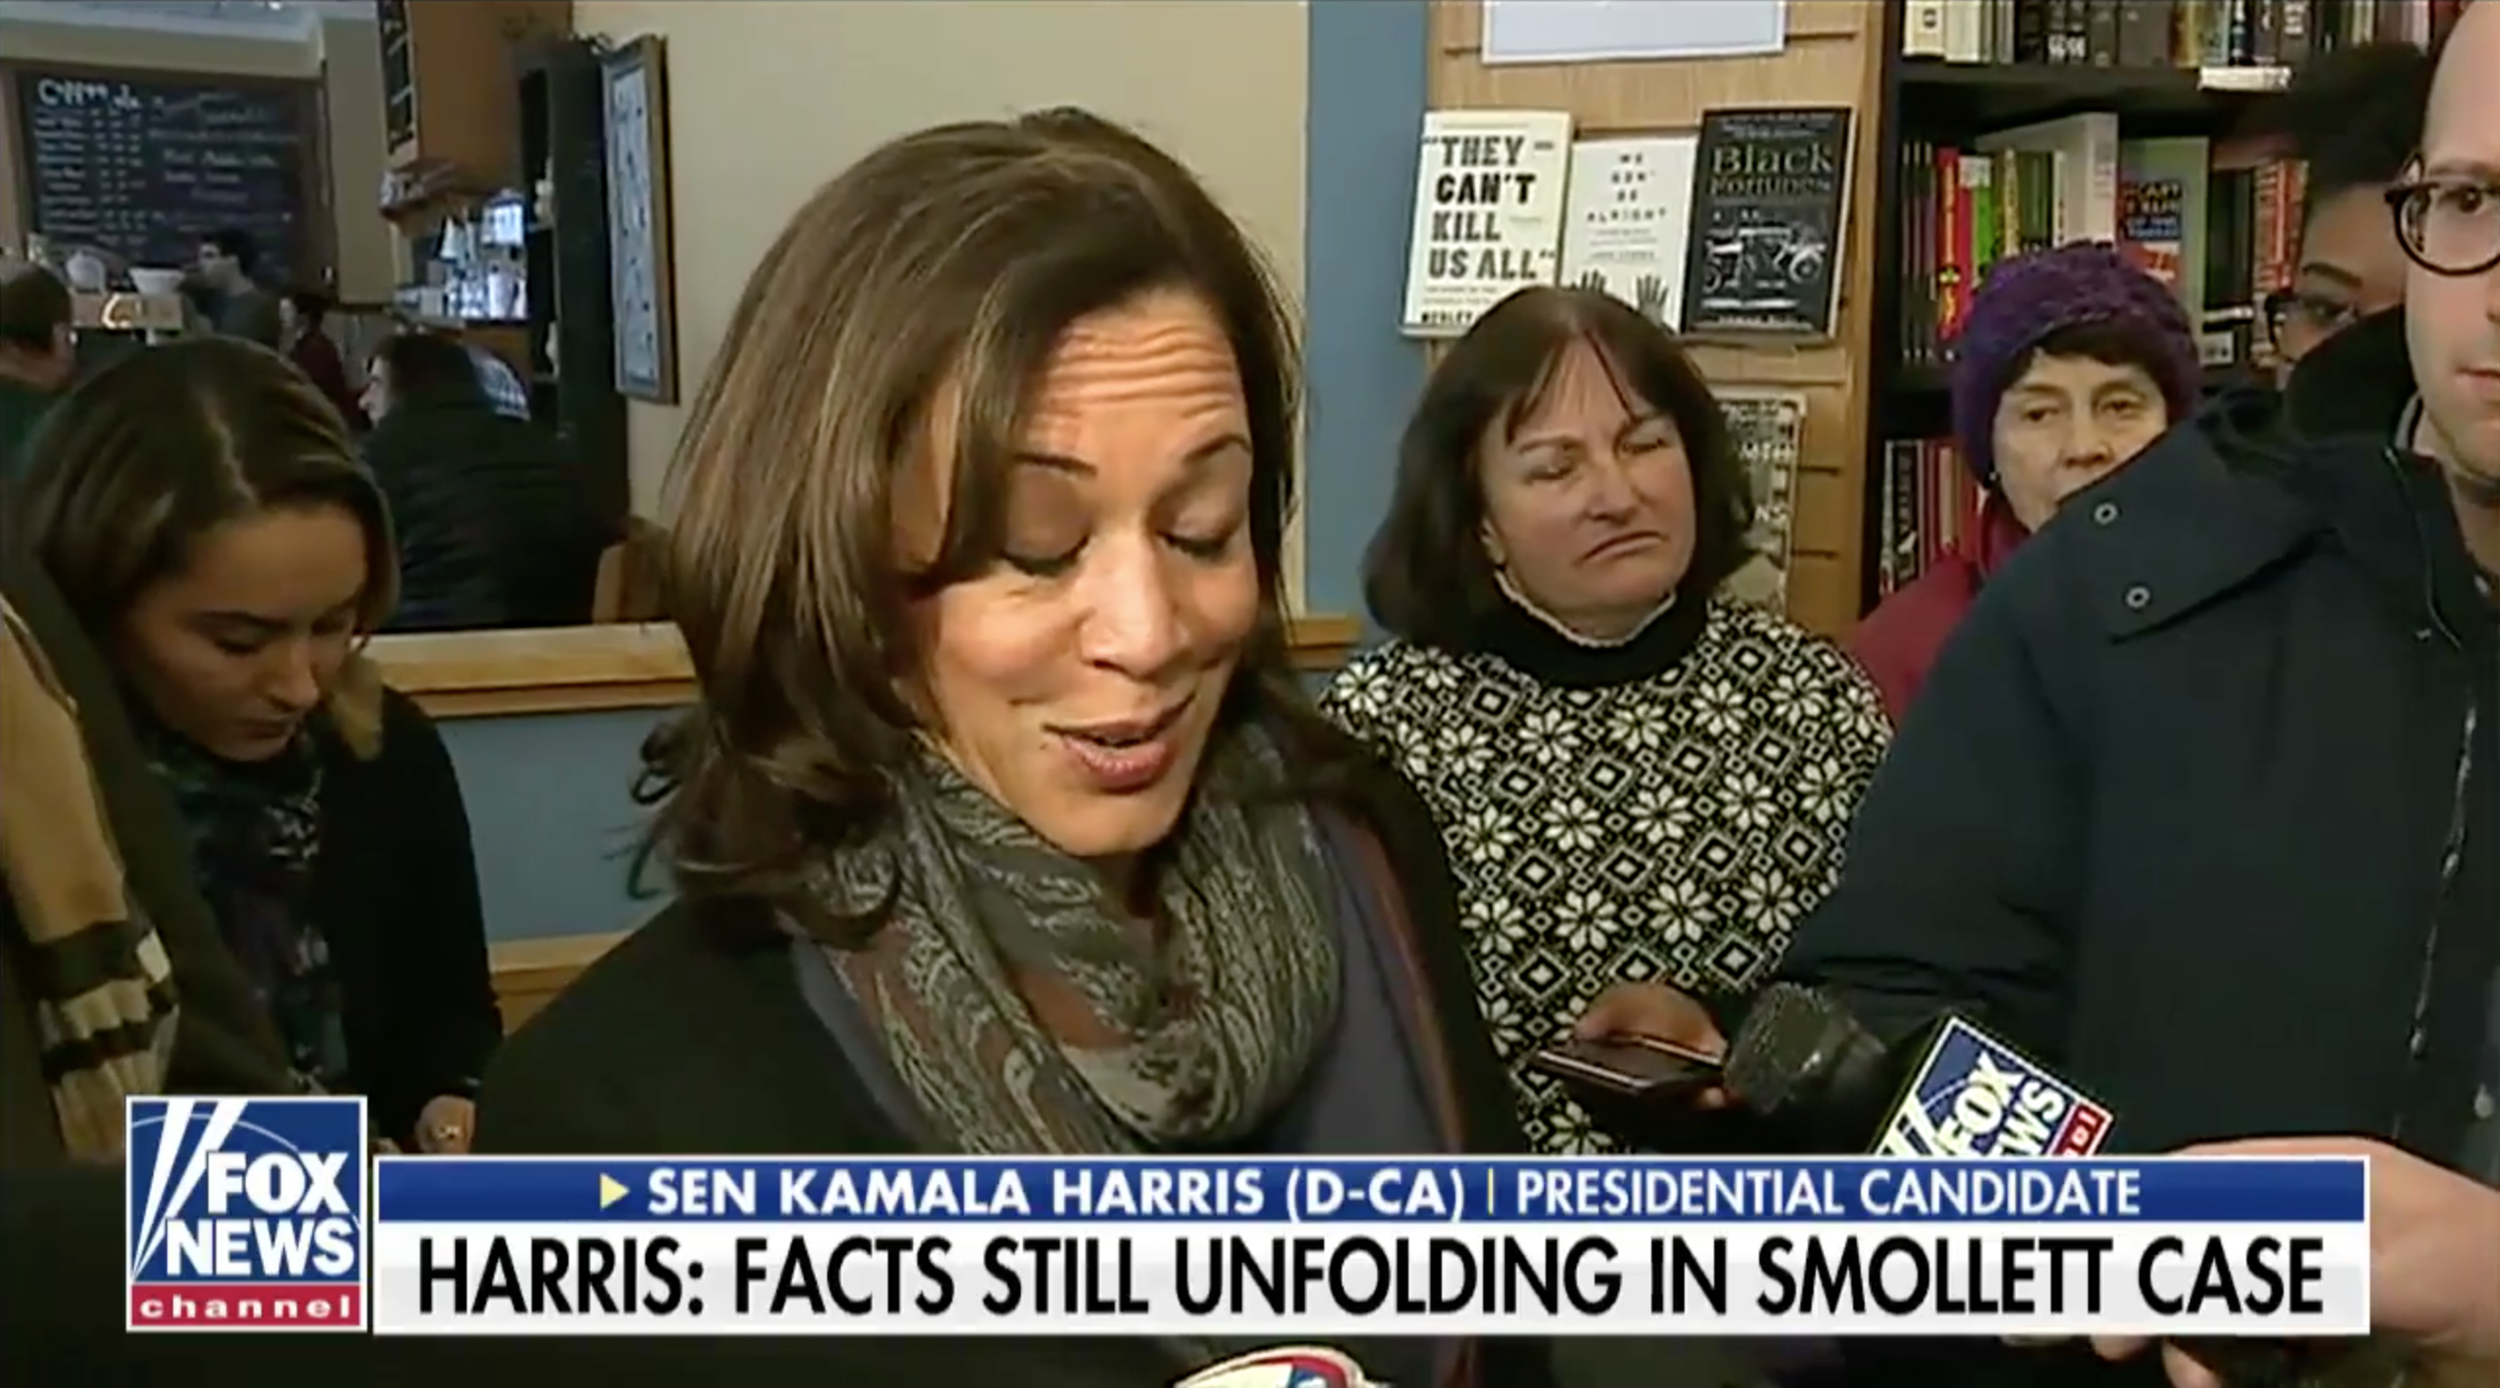 ( Fox News ) Kamala Harris gave awkward response Monday when asked about Jussie Smollett claims